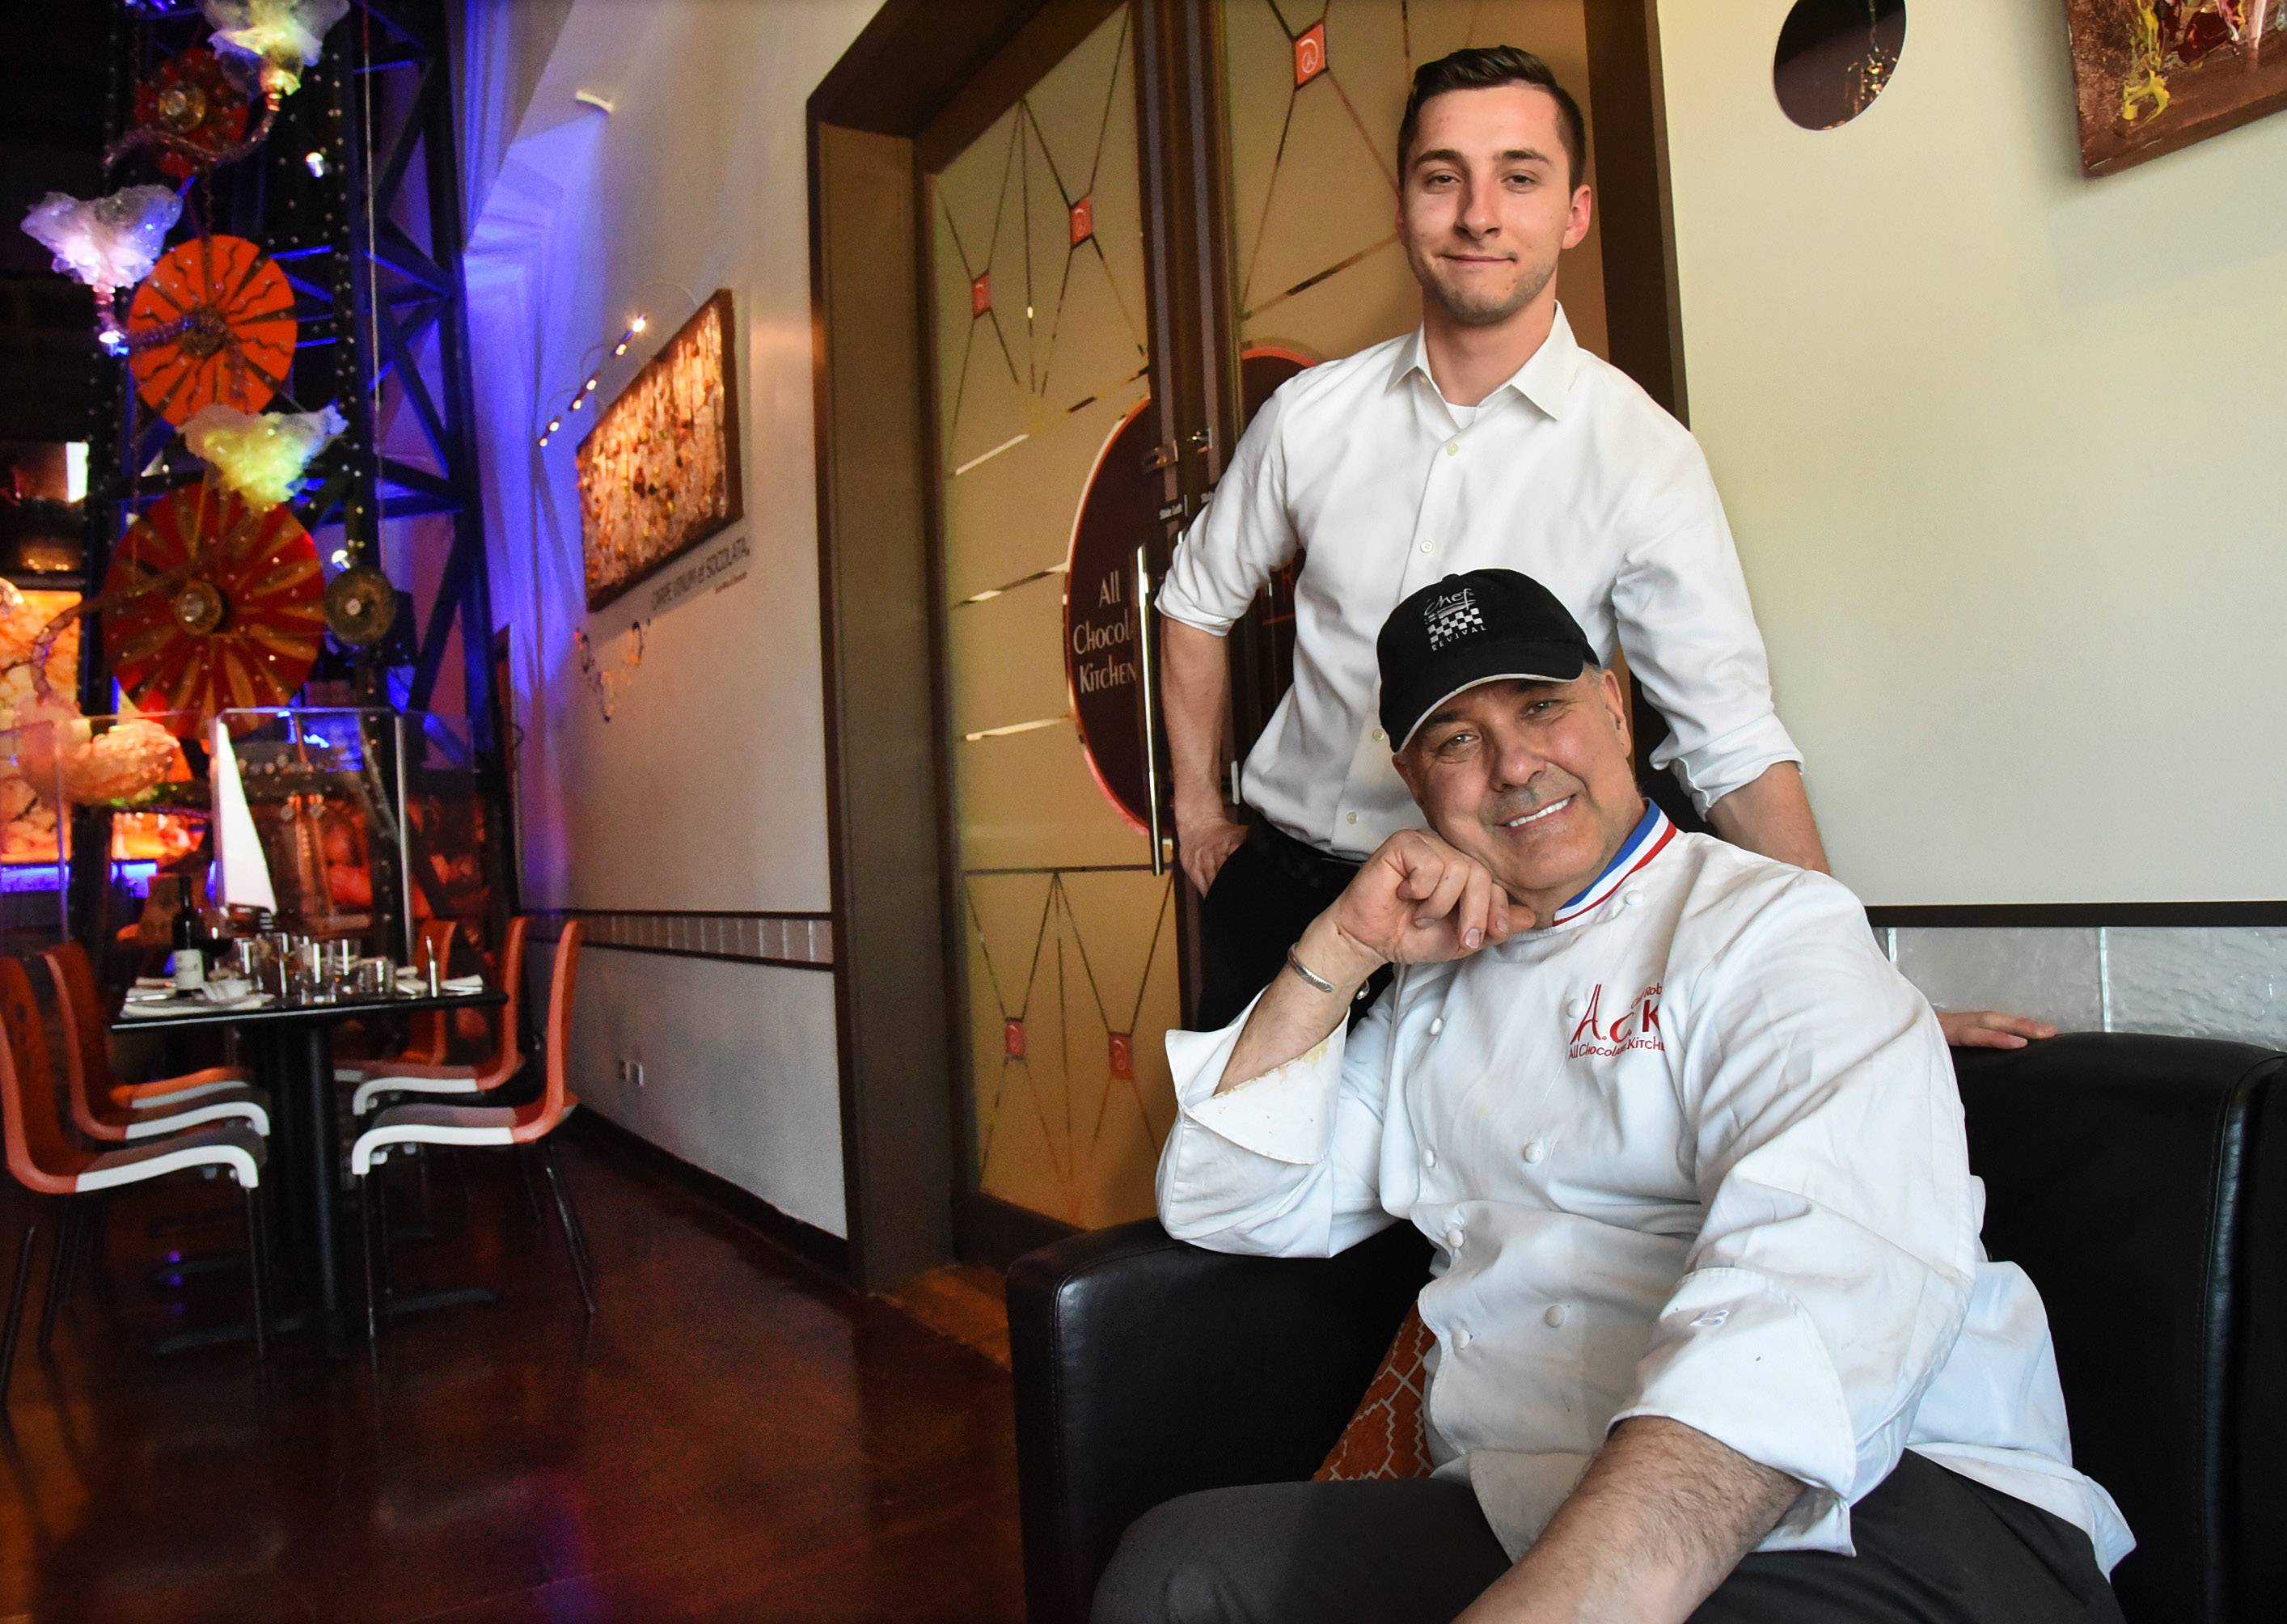 Chef Alain Roby expanded on his All Chocolate Kitchen in Geneva with the recent opening of Primo, which his son, Adrian Roby, manages.